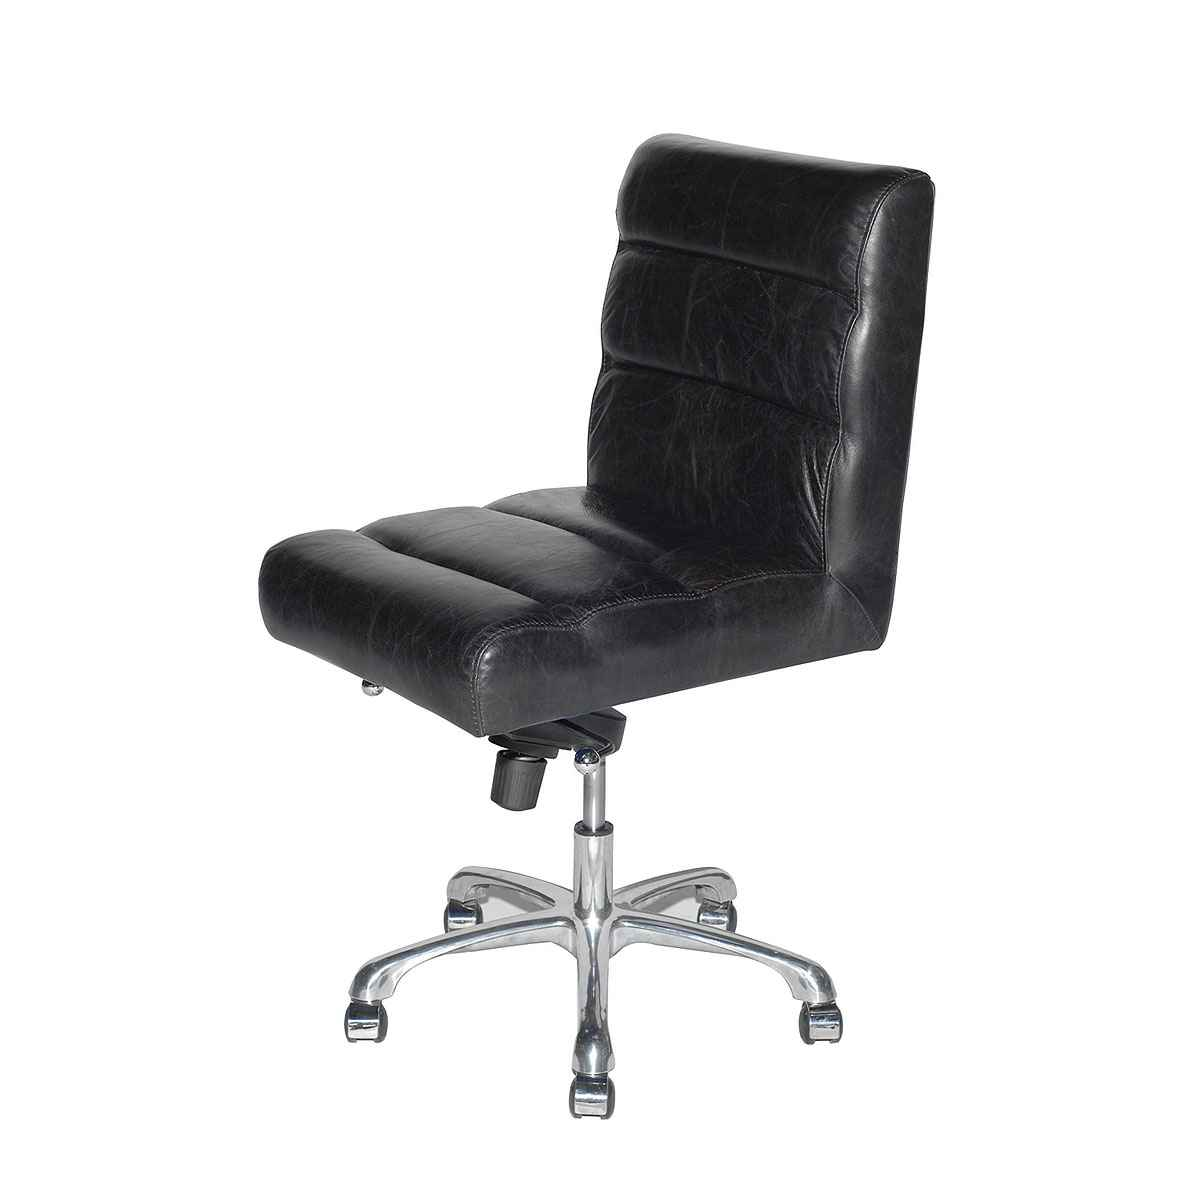 Black Desk Chair Leather Office Chair Office Furniture